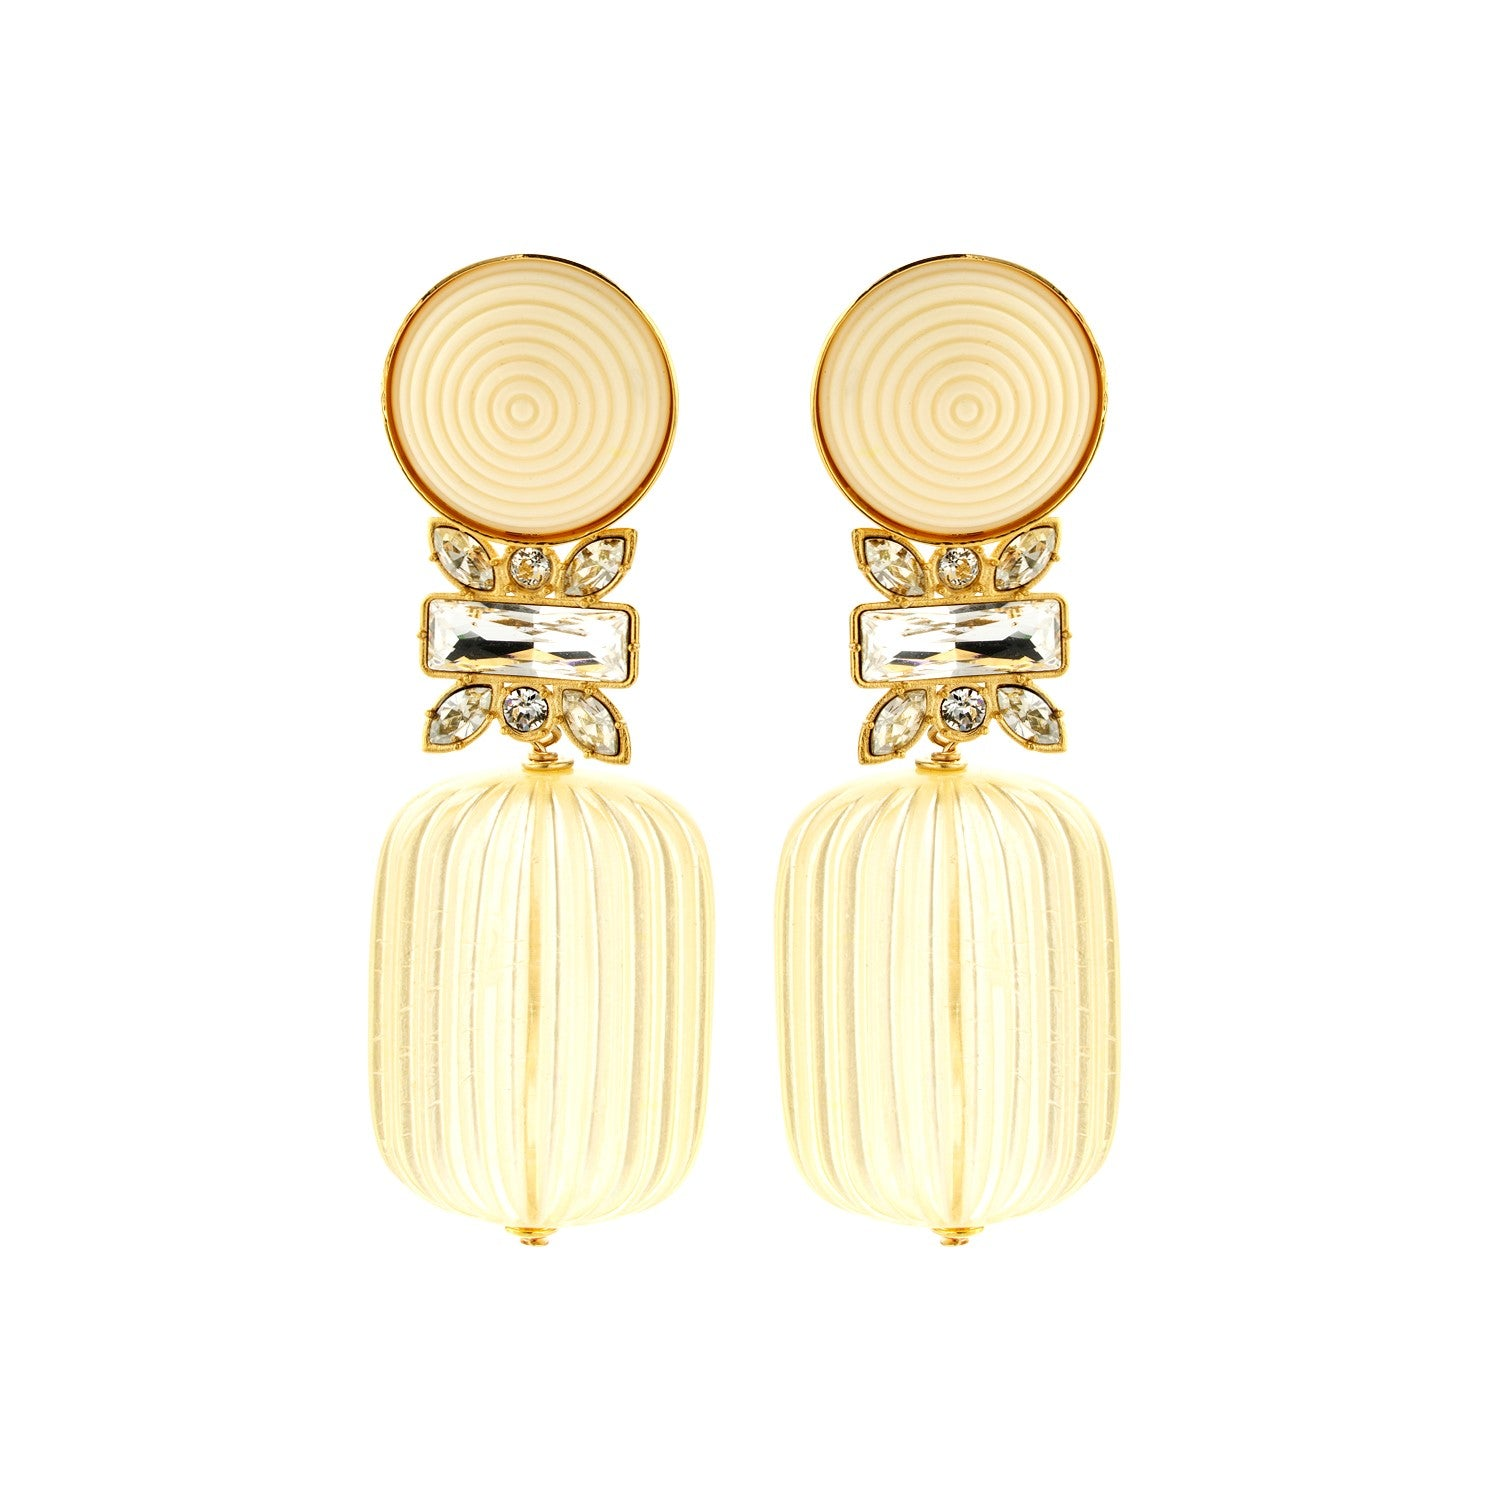 Erica champagne earrings - Souvenirs de Pomme